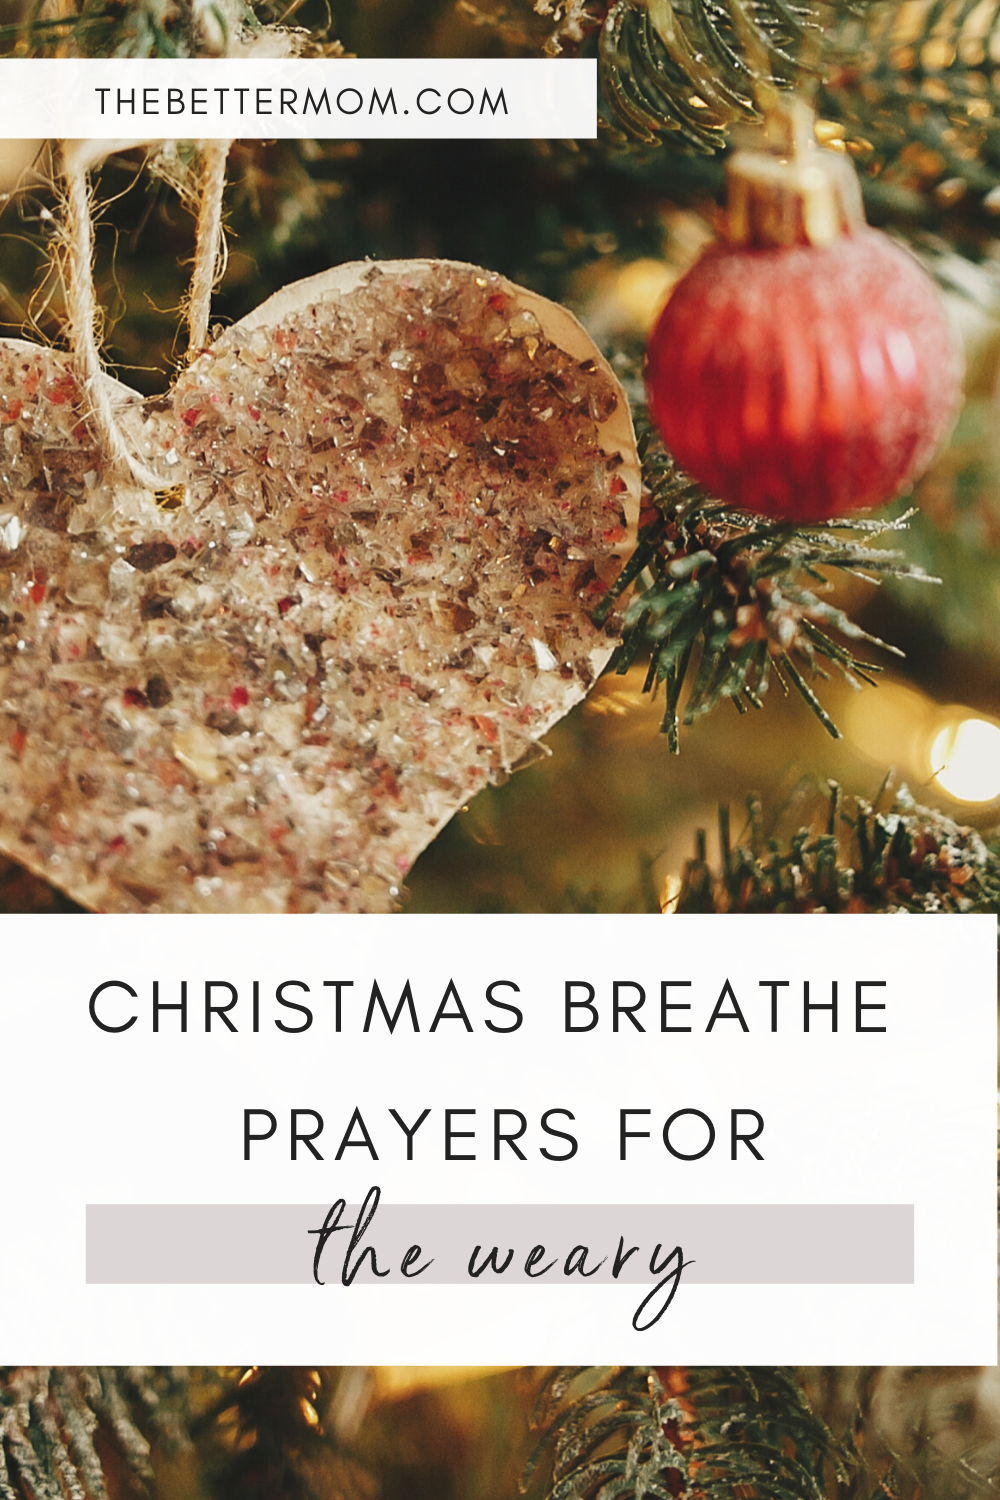 Christmas Breathe Prayers for the Weary